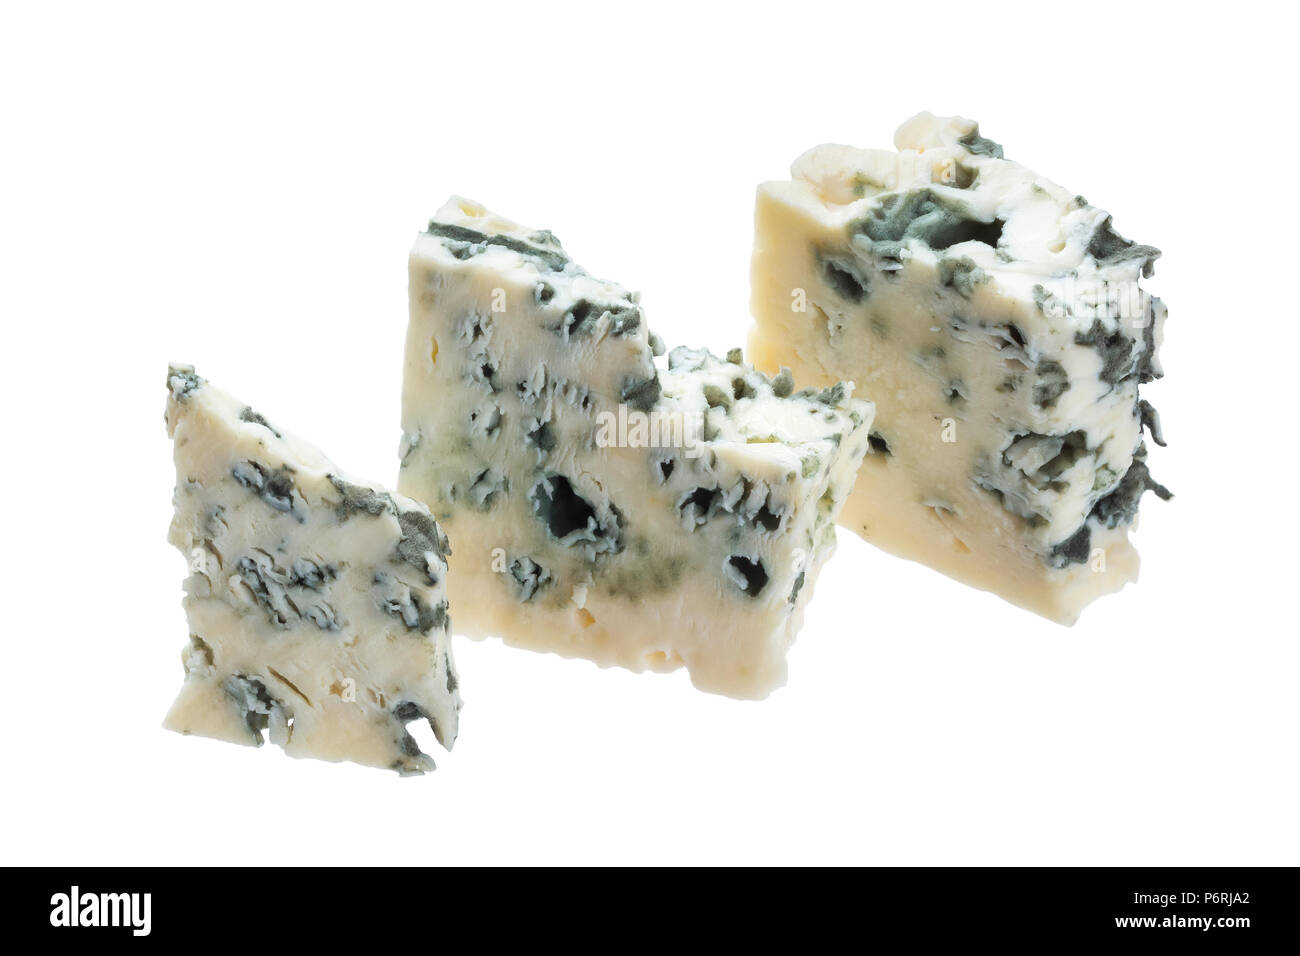 Danish blue cheese isolated on white background with clipping path - Stock Image